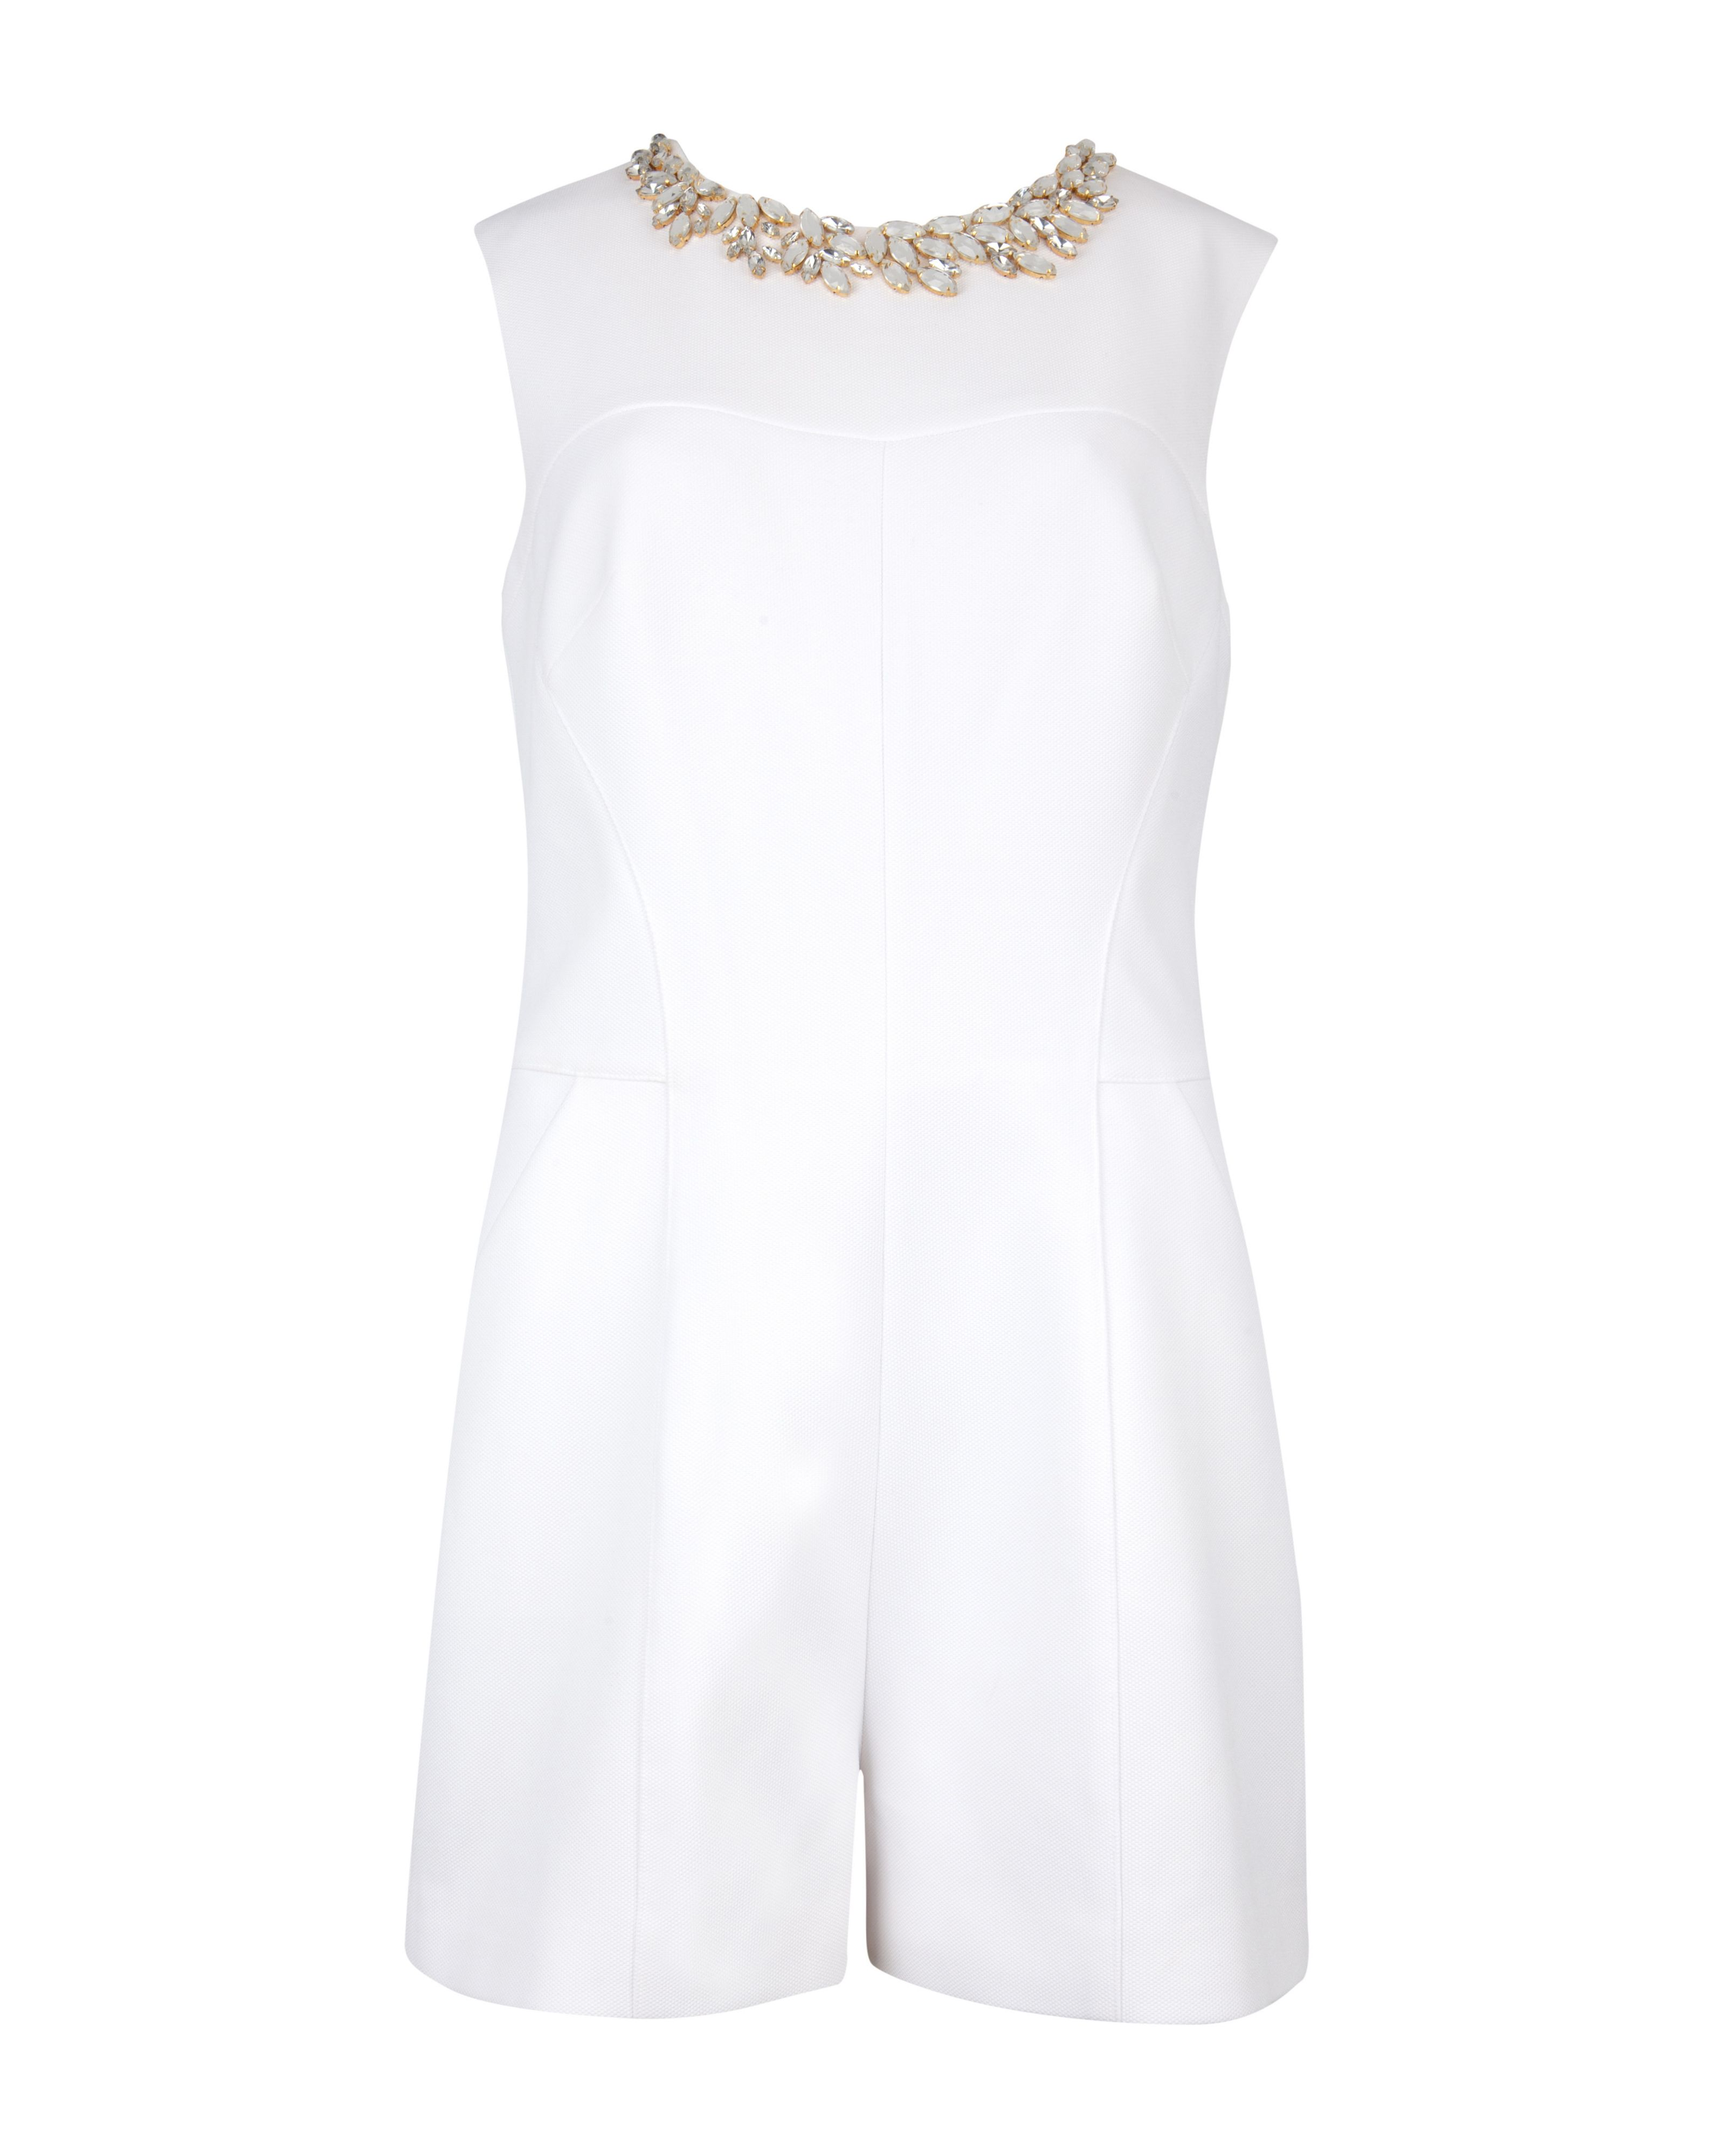 Anaeya embellished playsuit